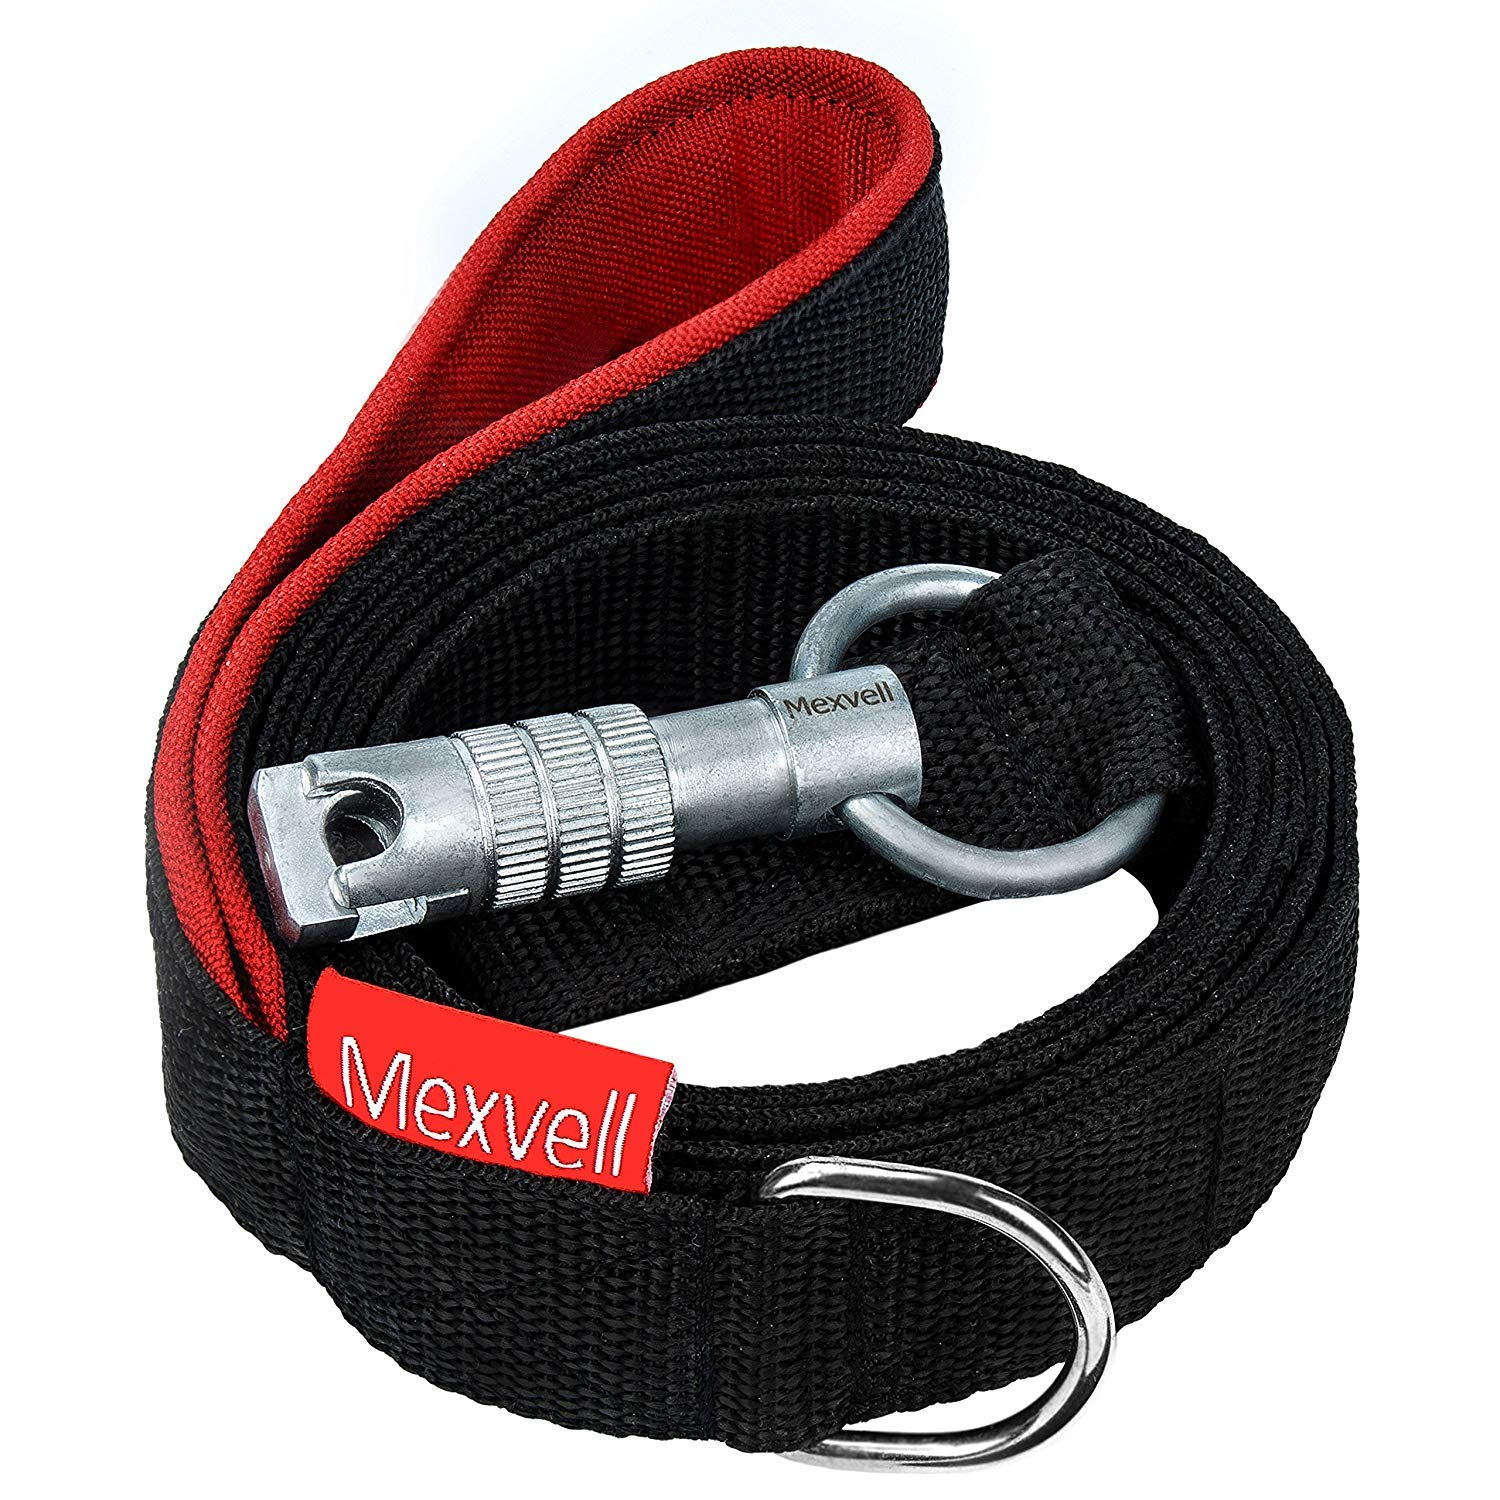 Dog Leash with Unbreakable Carabiner by Mexvell - Perfect for Large, Medium and Strong Small Dogs - Extra Heavy Duty and Durable - Padded Handle - Black, 6 ft Long, Thick 3mm Nylon, 1 Inch Wide by Mexvell